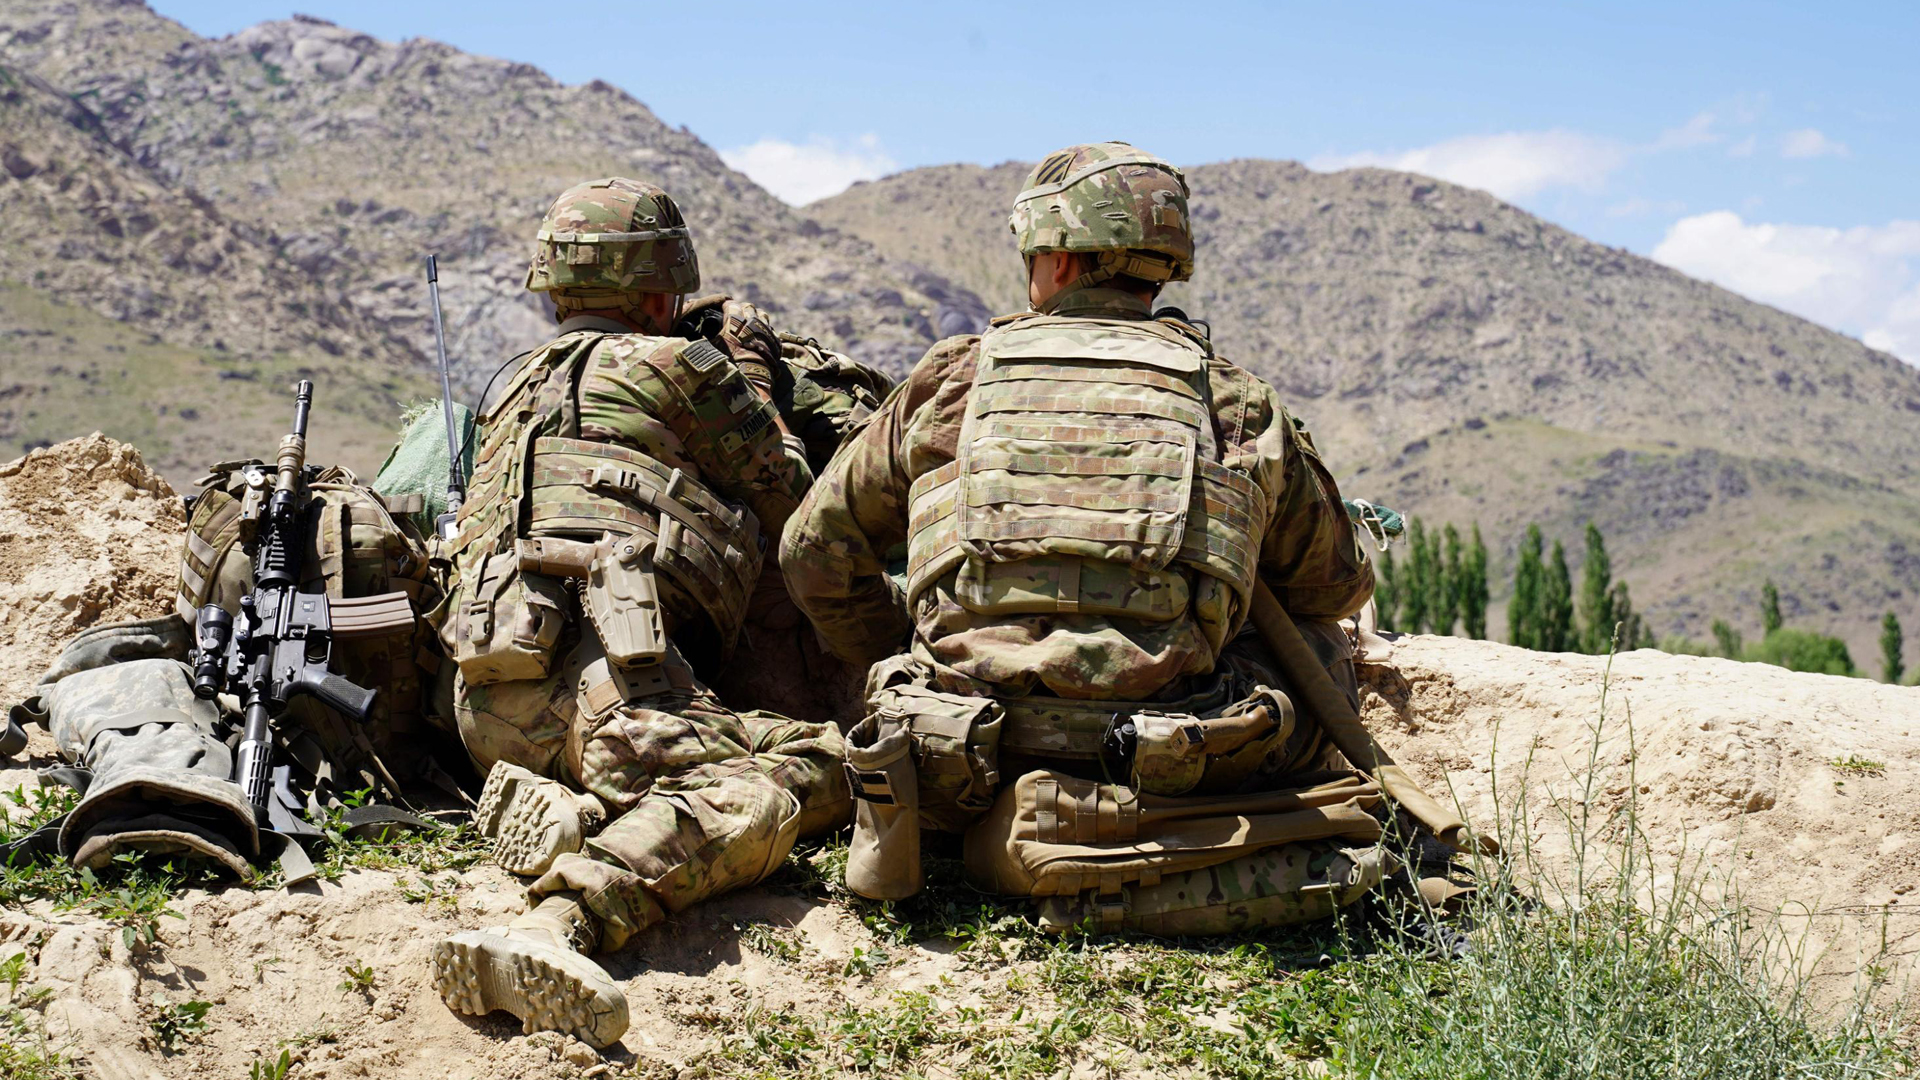 In this photo taken on June 6, 2019, U.S. soldiers look out over hillsides during a visit of the commander of U.S. and NATO forces in Afghanistan General Scott Miller at the Afghan National Army checkpoint in Nerkh district of Wardak province. (Credit: THOMAS WATKINS/AFP via Getty Images)